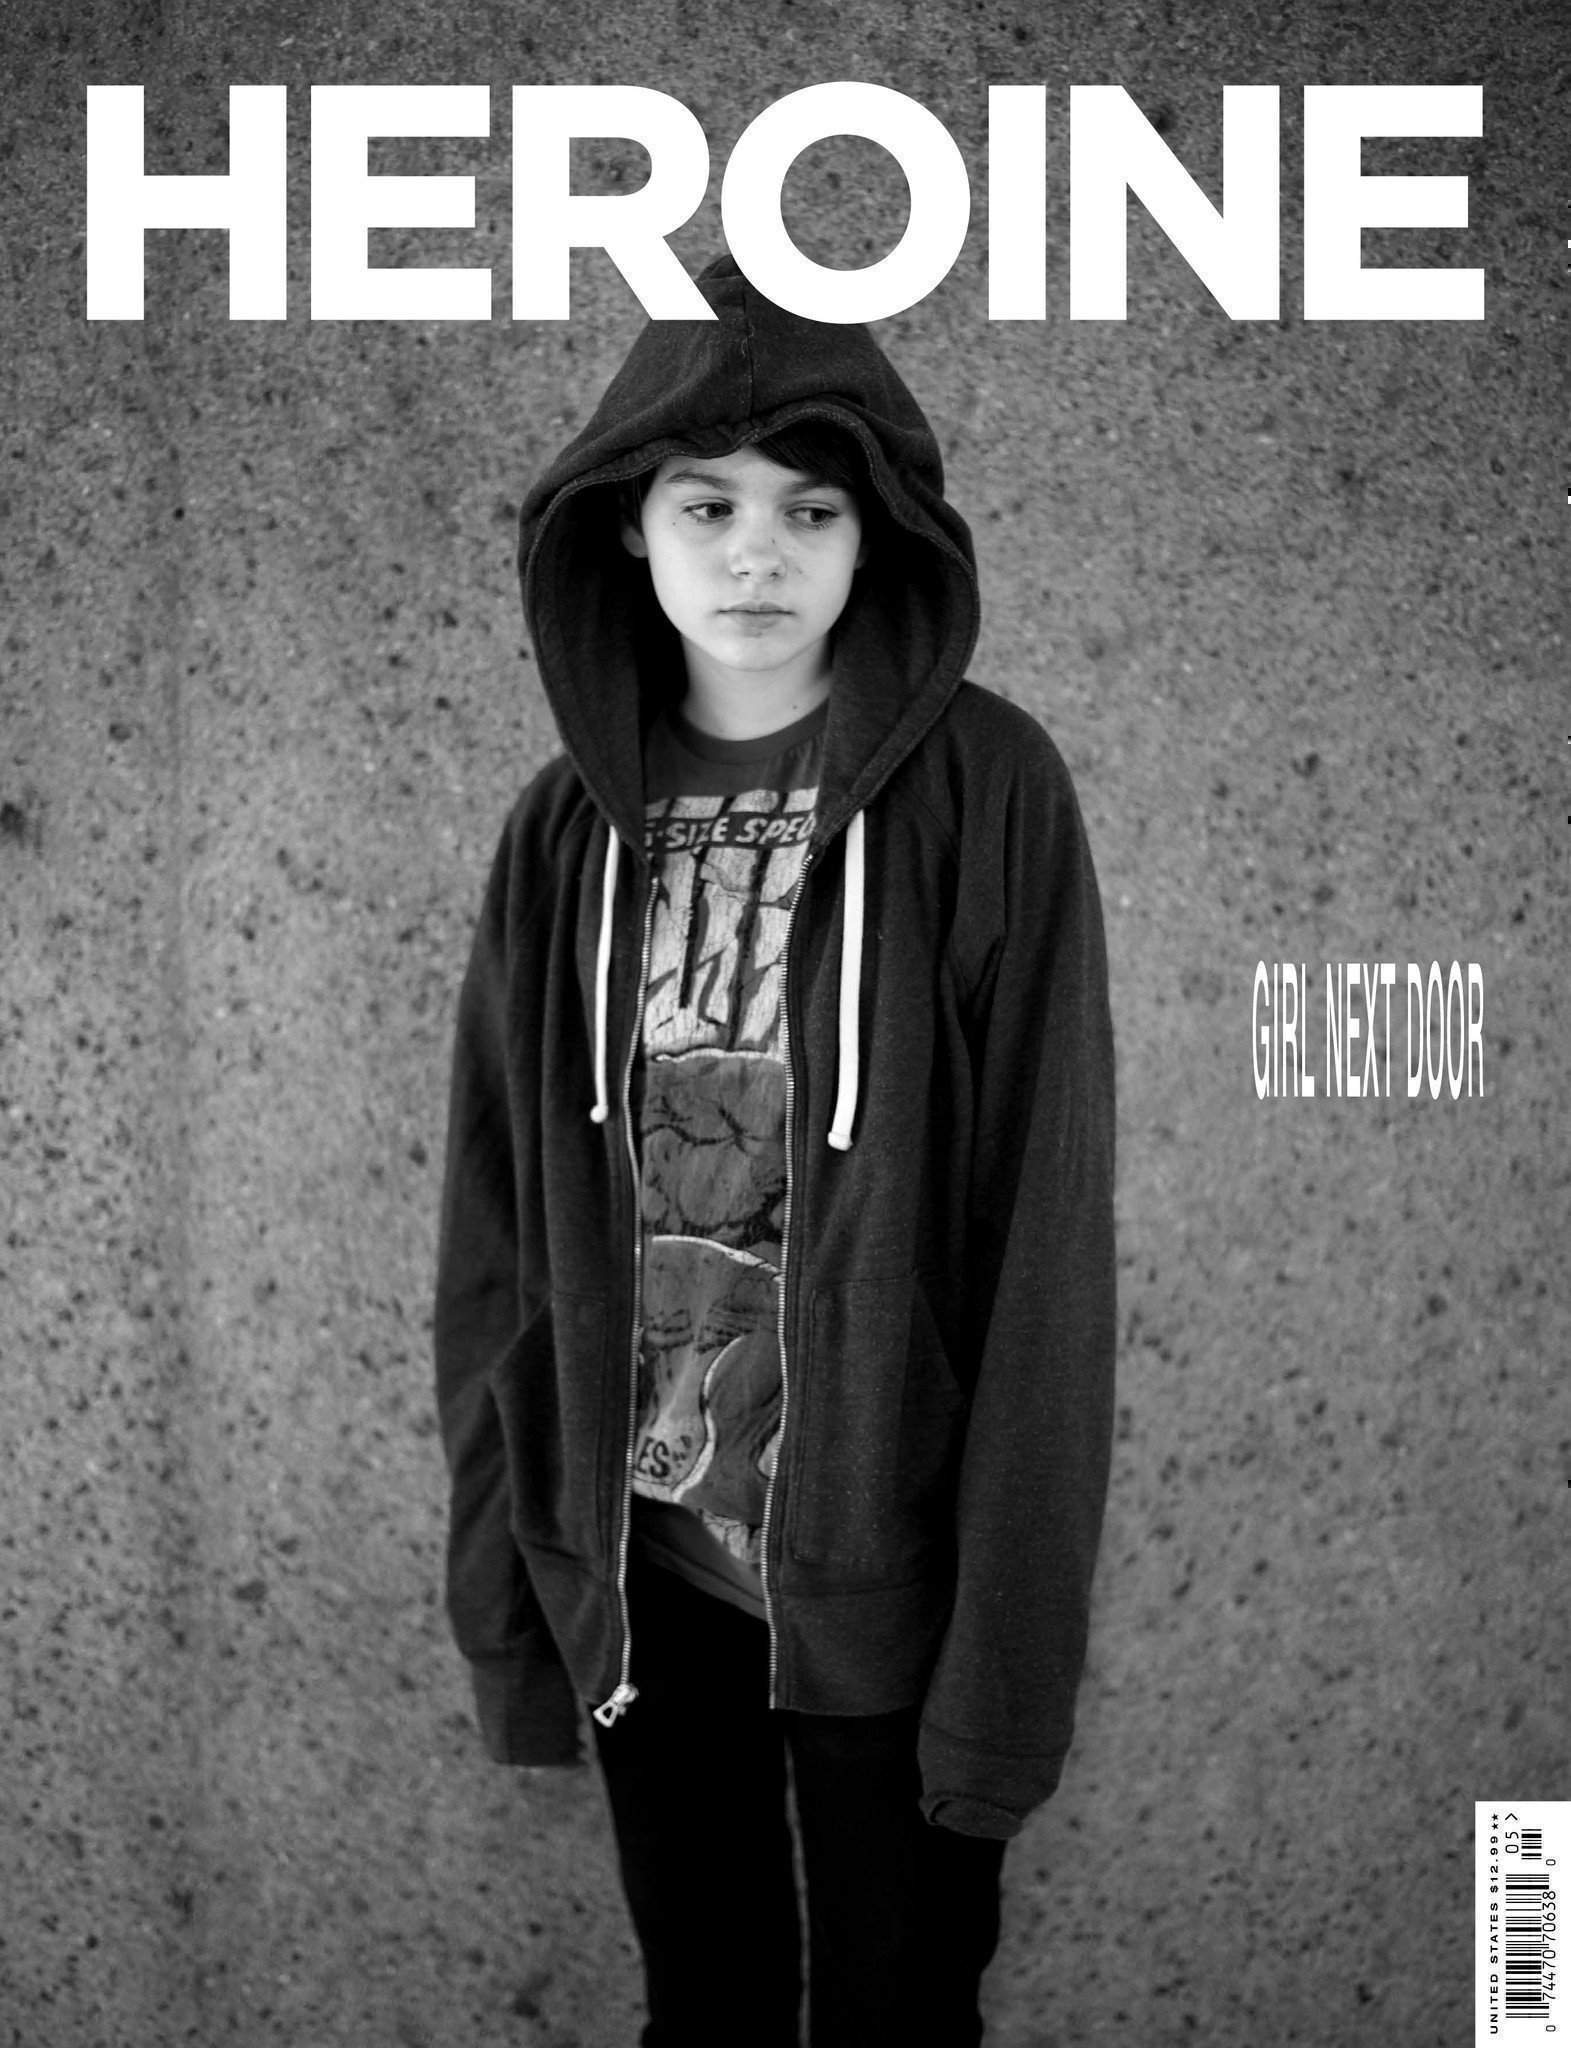 Fall Press Magazine HEROINE